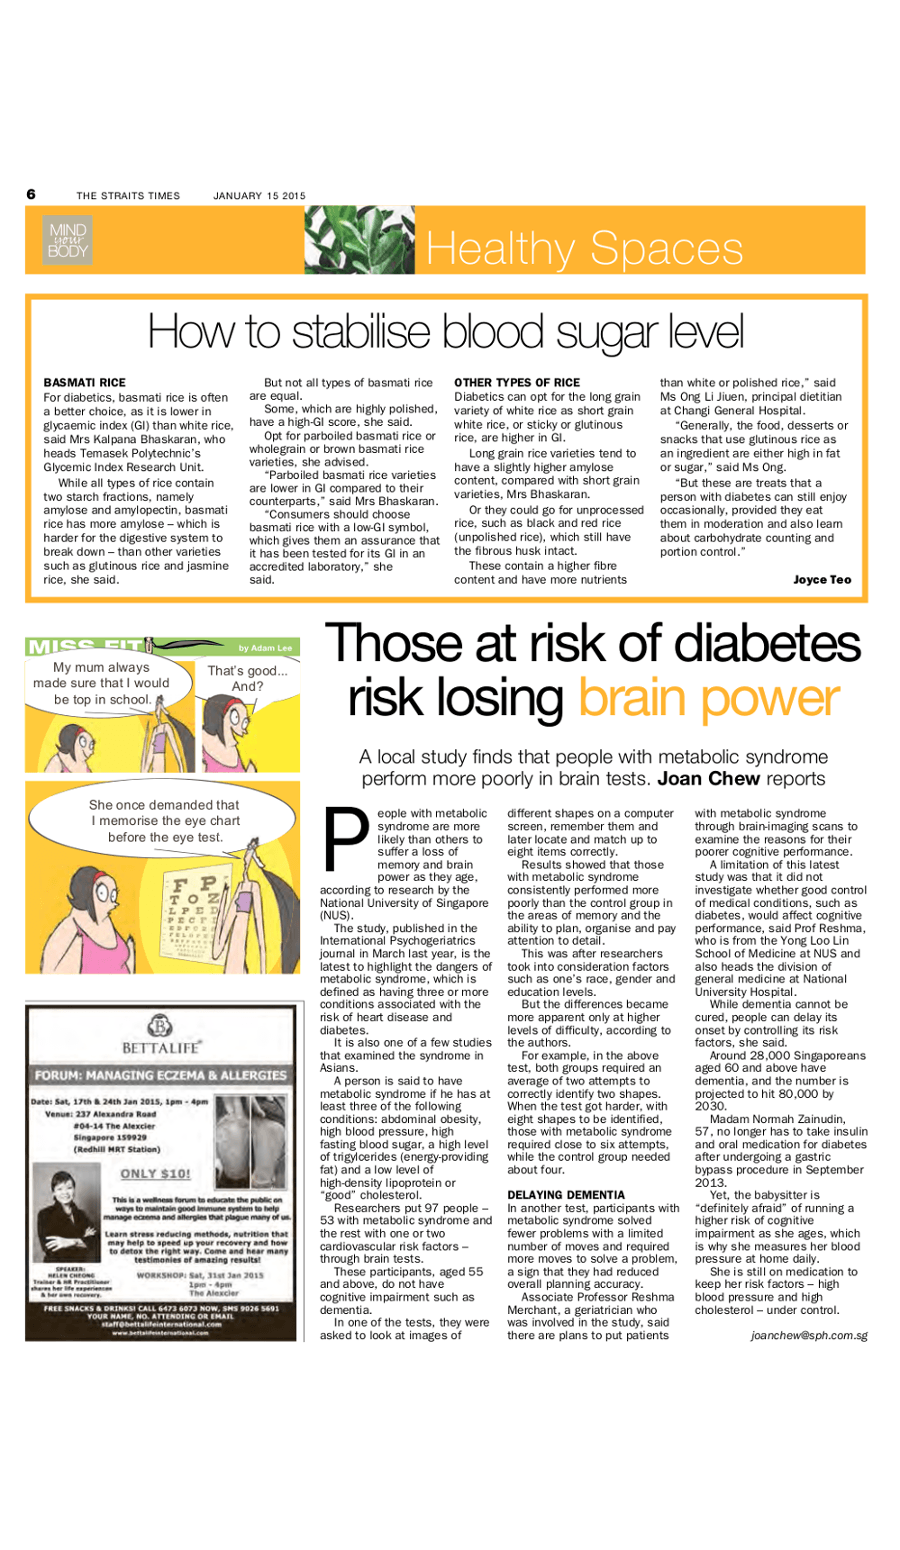 how-to-stablise-blood-sugar-level-straits-times-2015-15th-jan_900x1500